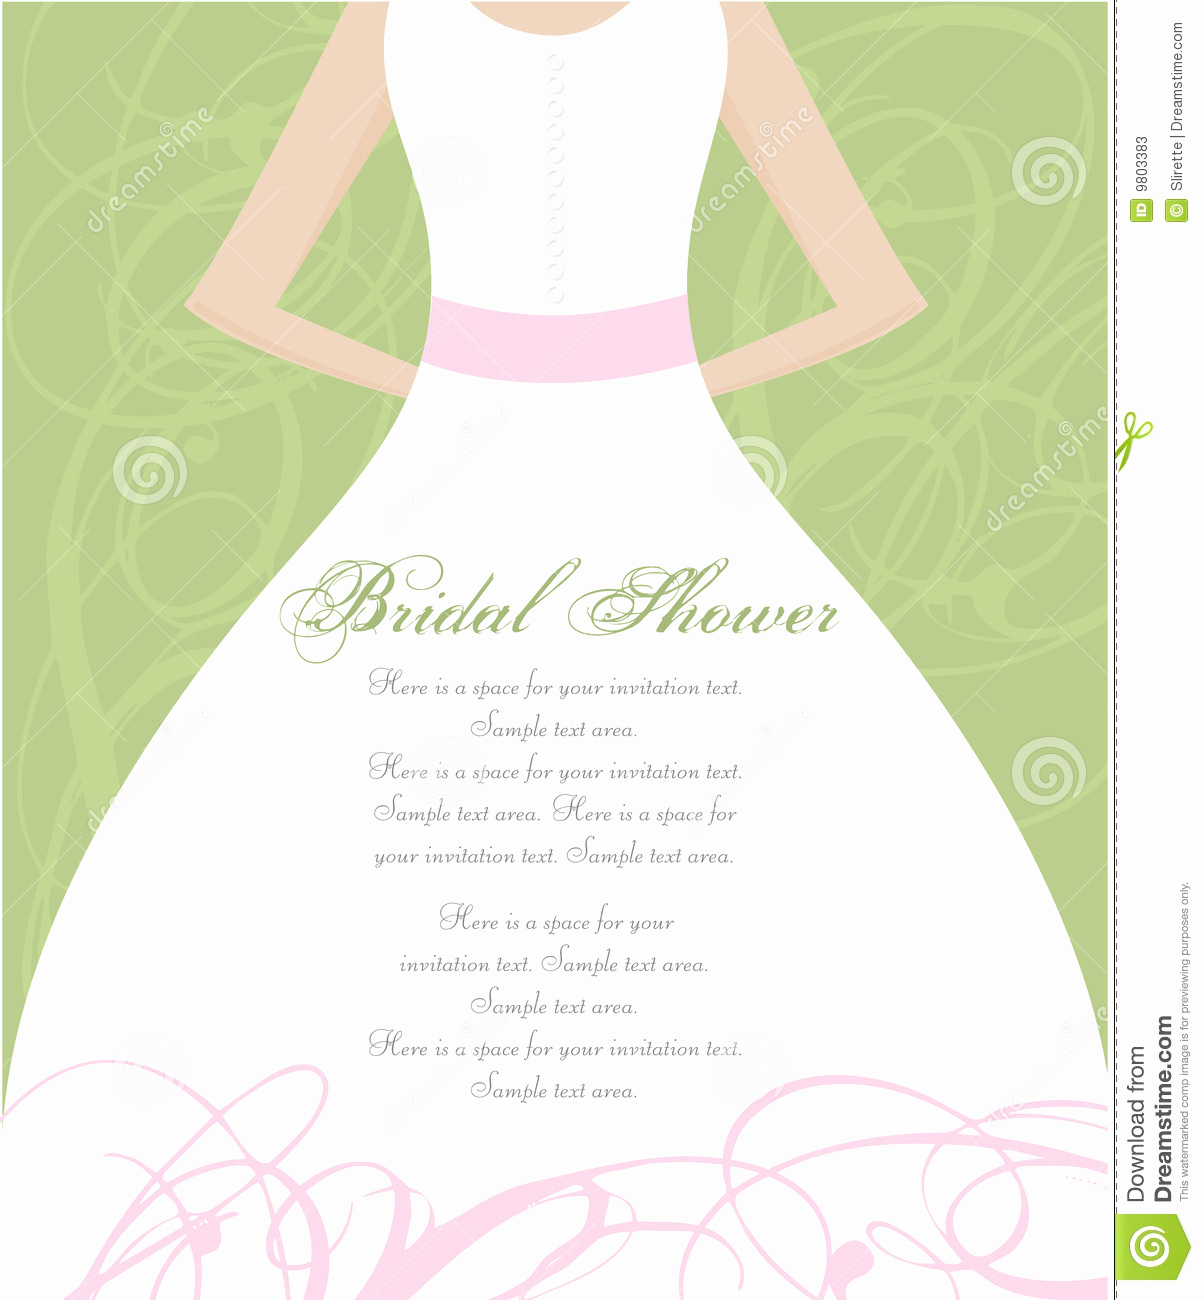 Free Bridal Shower Invitations Fresh Bridal Shower Clipart for Invitations – 101 Clip Art